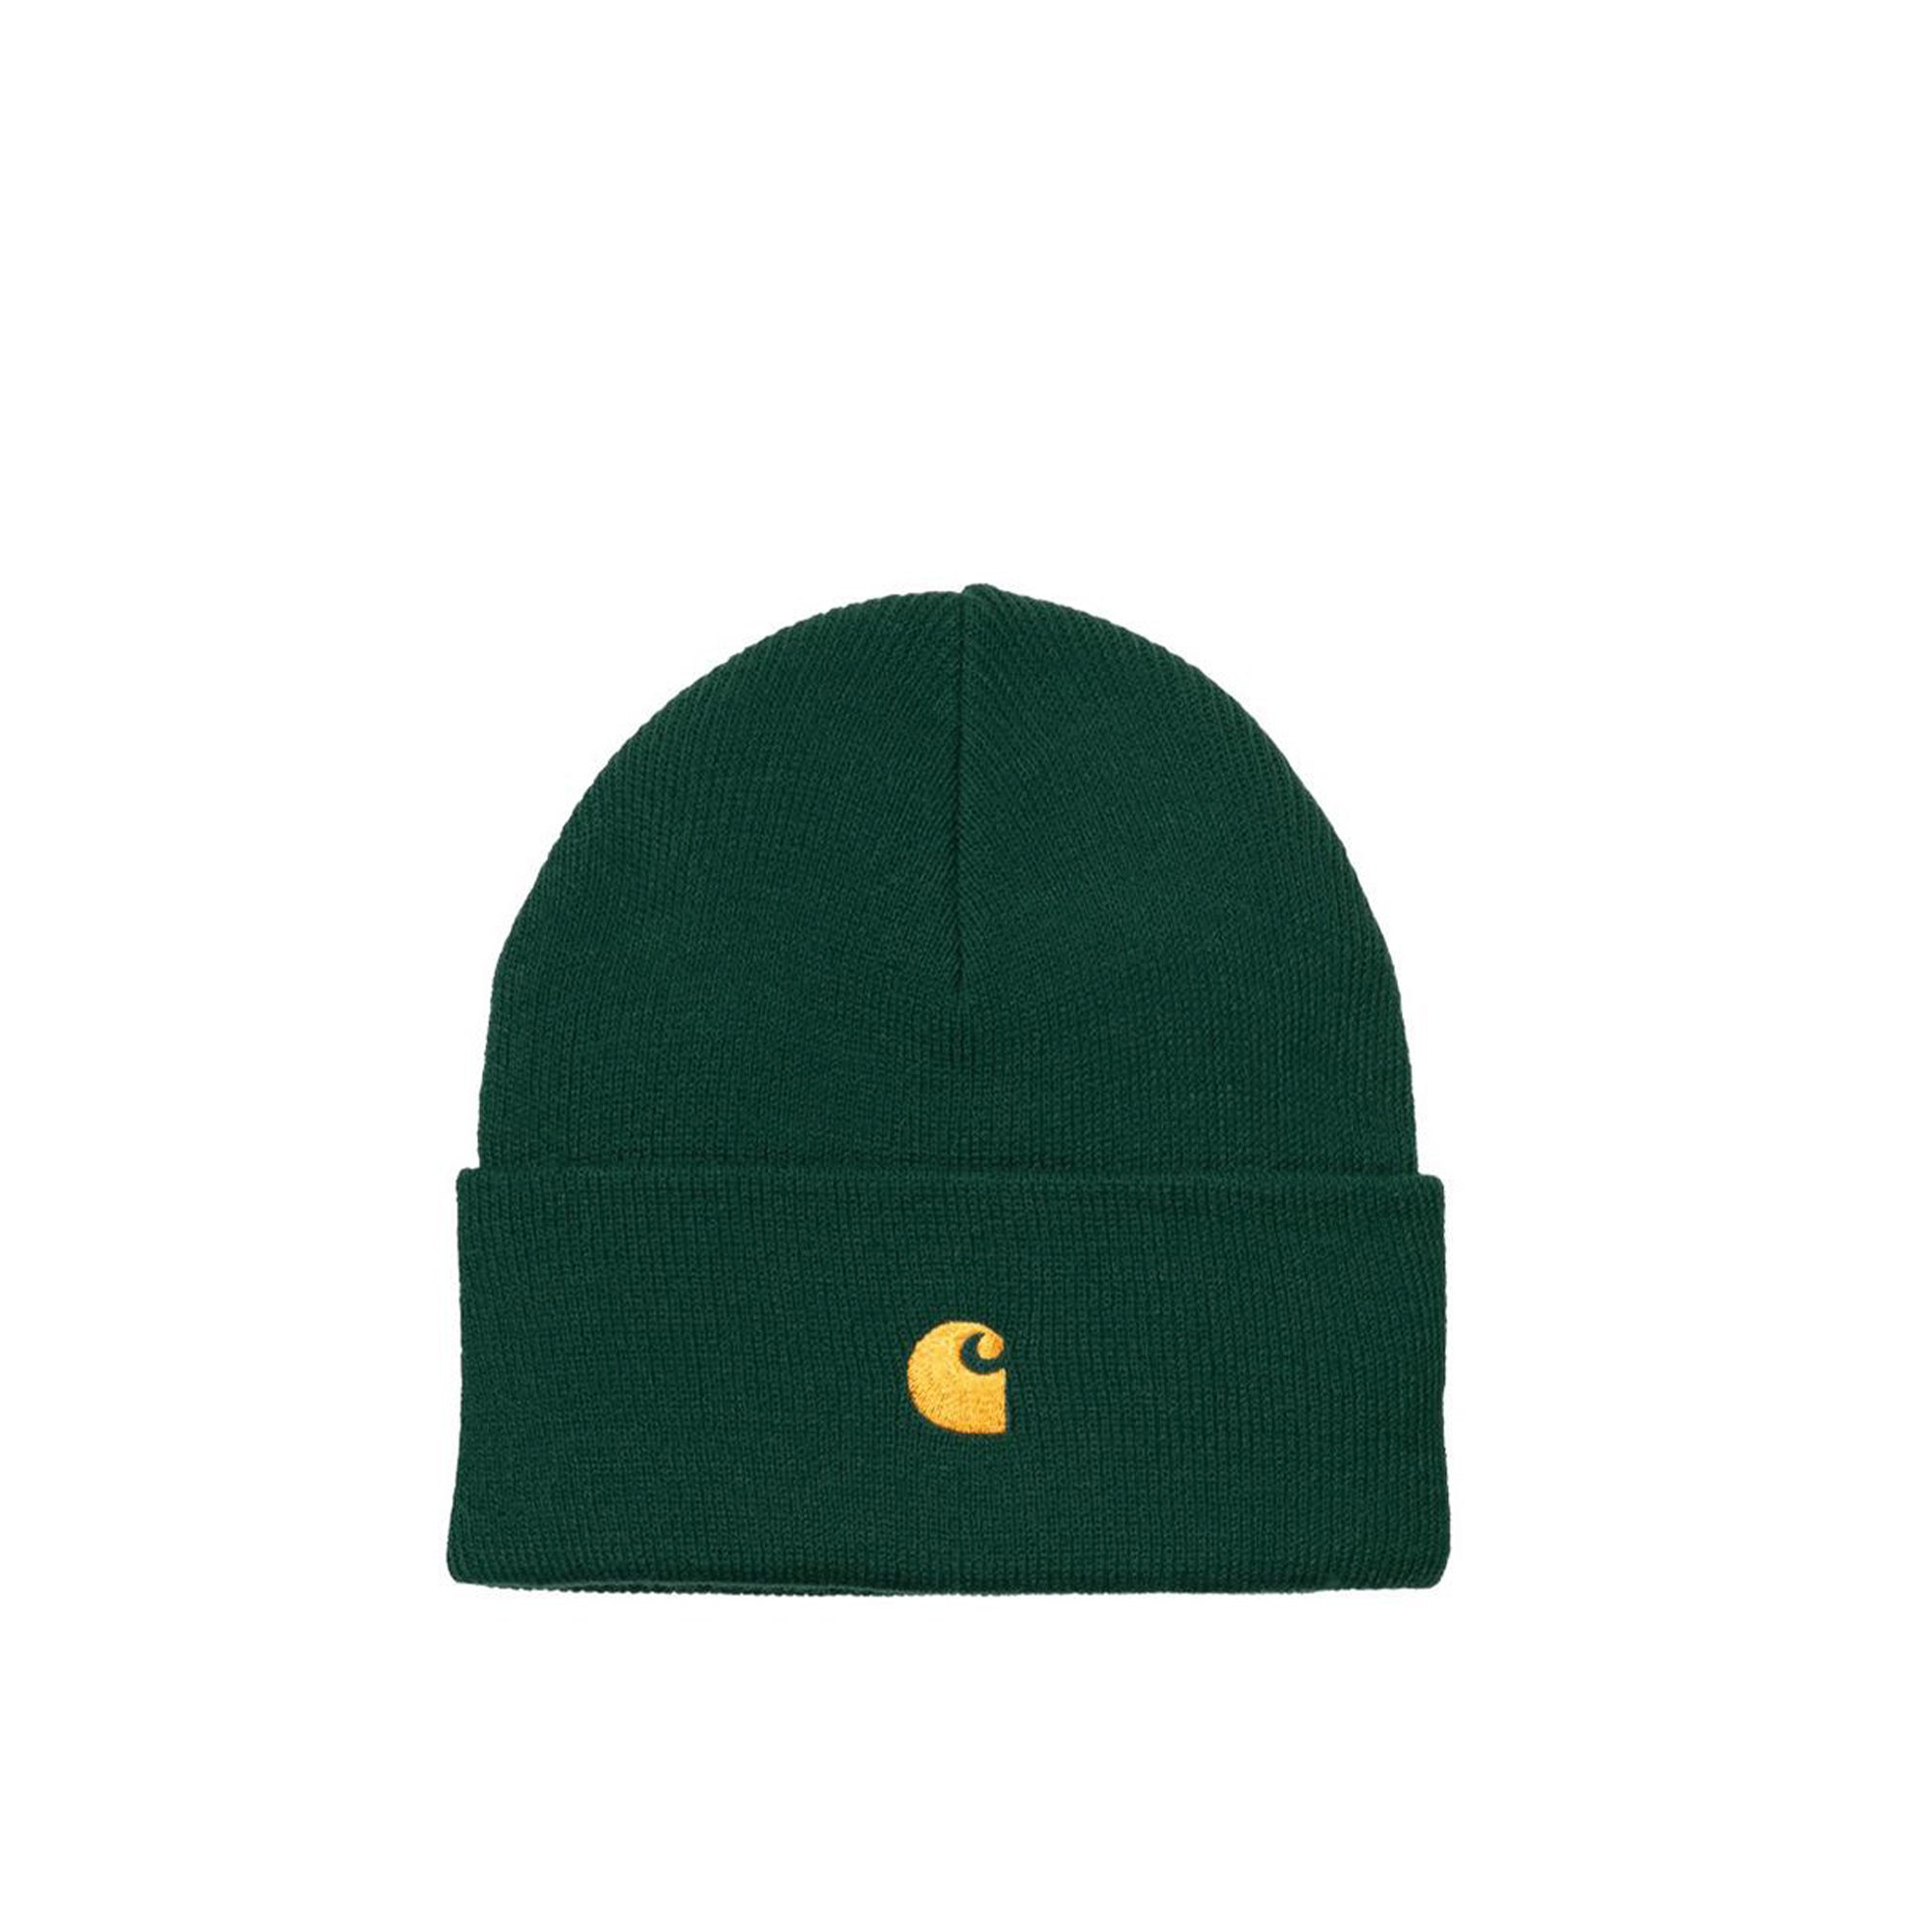 Carhartt WIP Chase Beanie: Treehouse / Gold - The Union Project